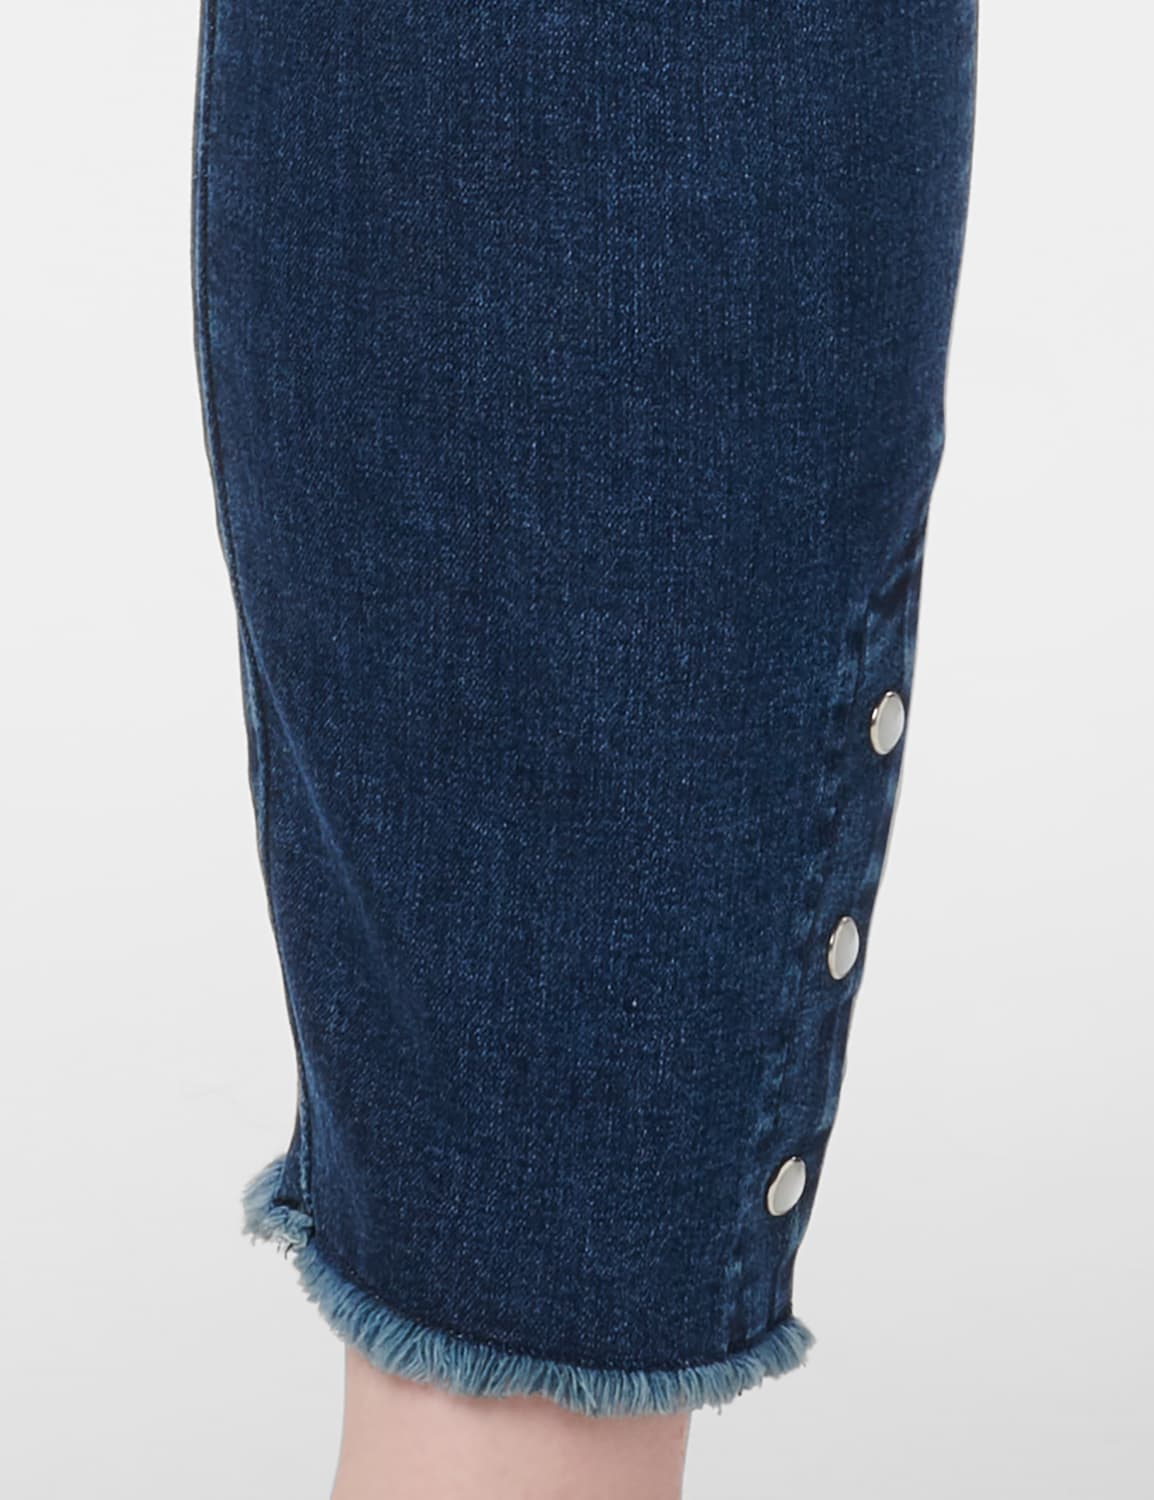 Westport Signature 5 Pocket Skinny Ankle Jean With Snap Button At Ankle - Plus - Dark Wash - Detail